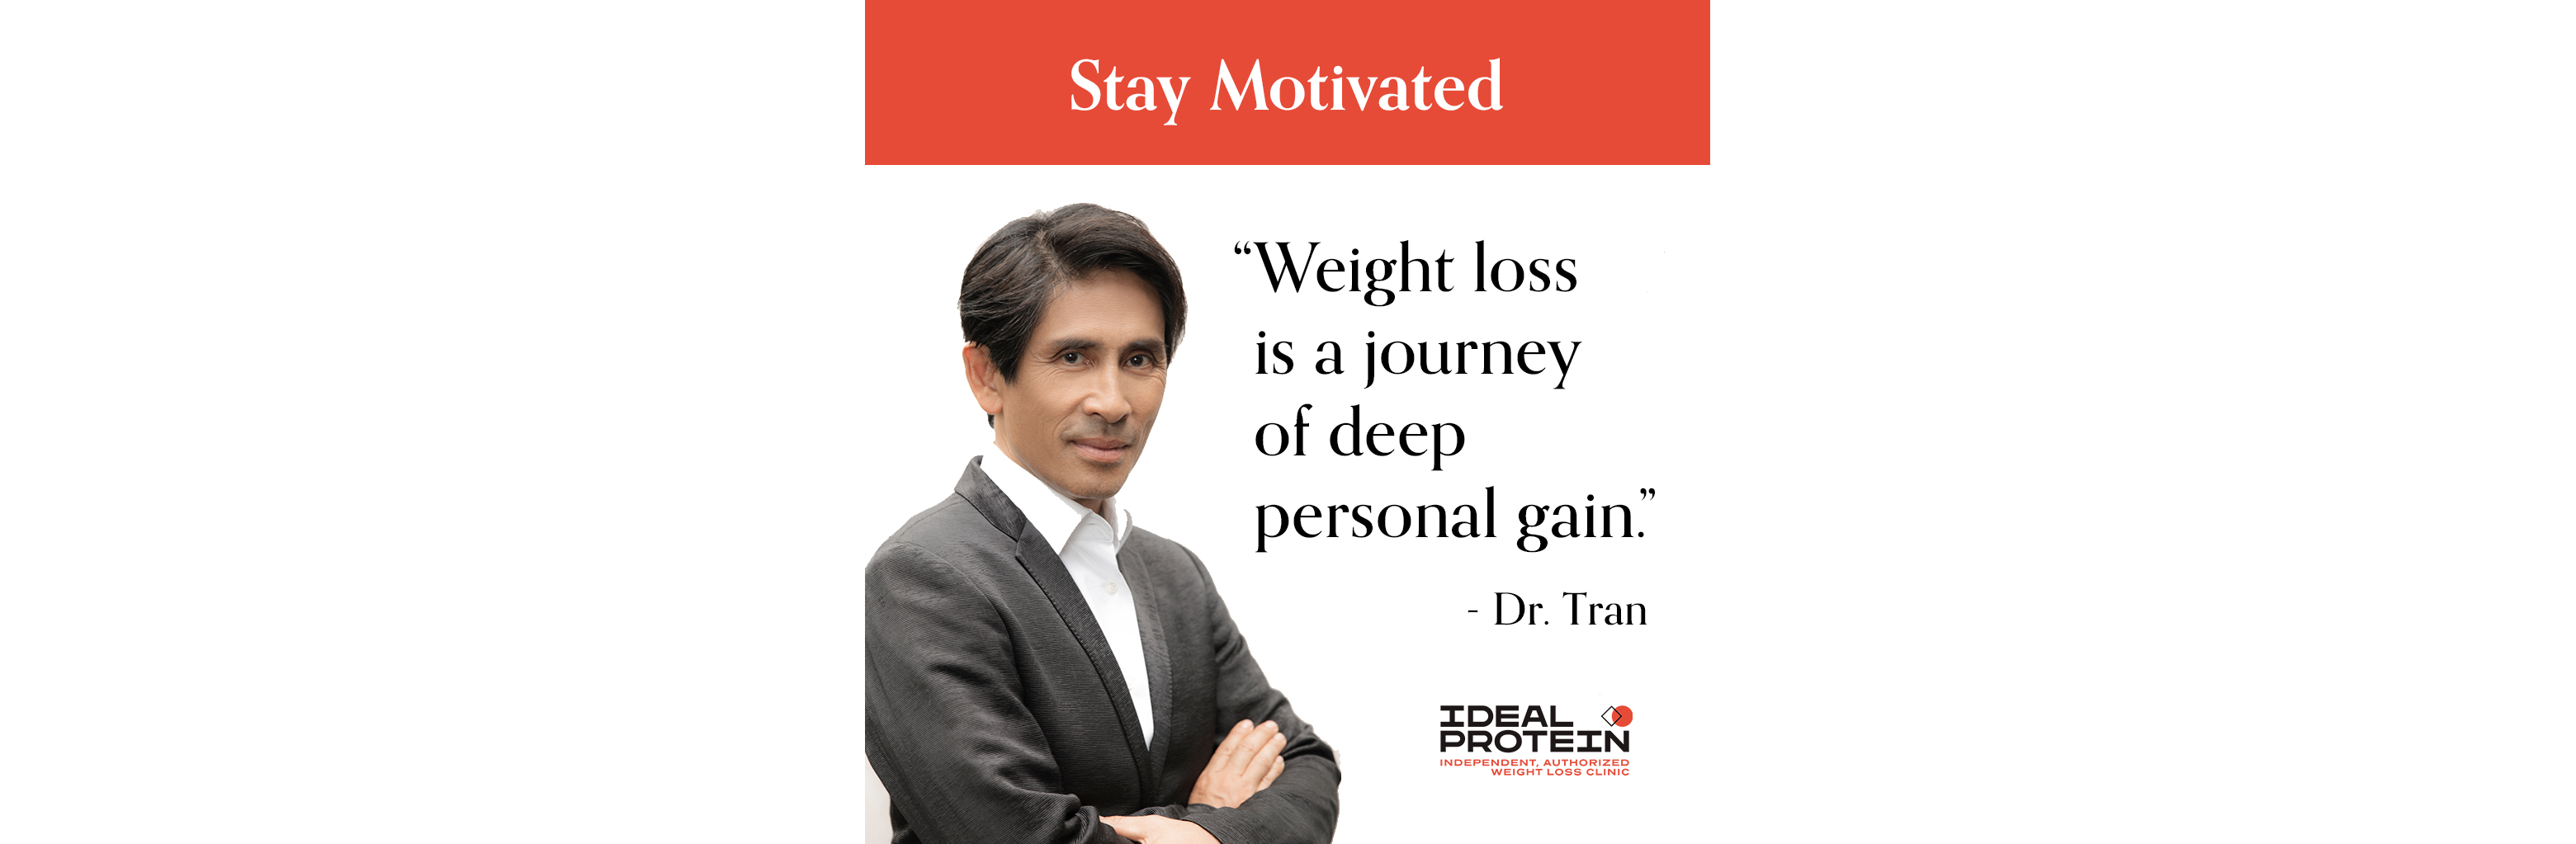 Ideal_Protein_Stay_Motivated